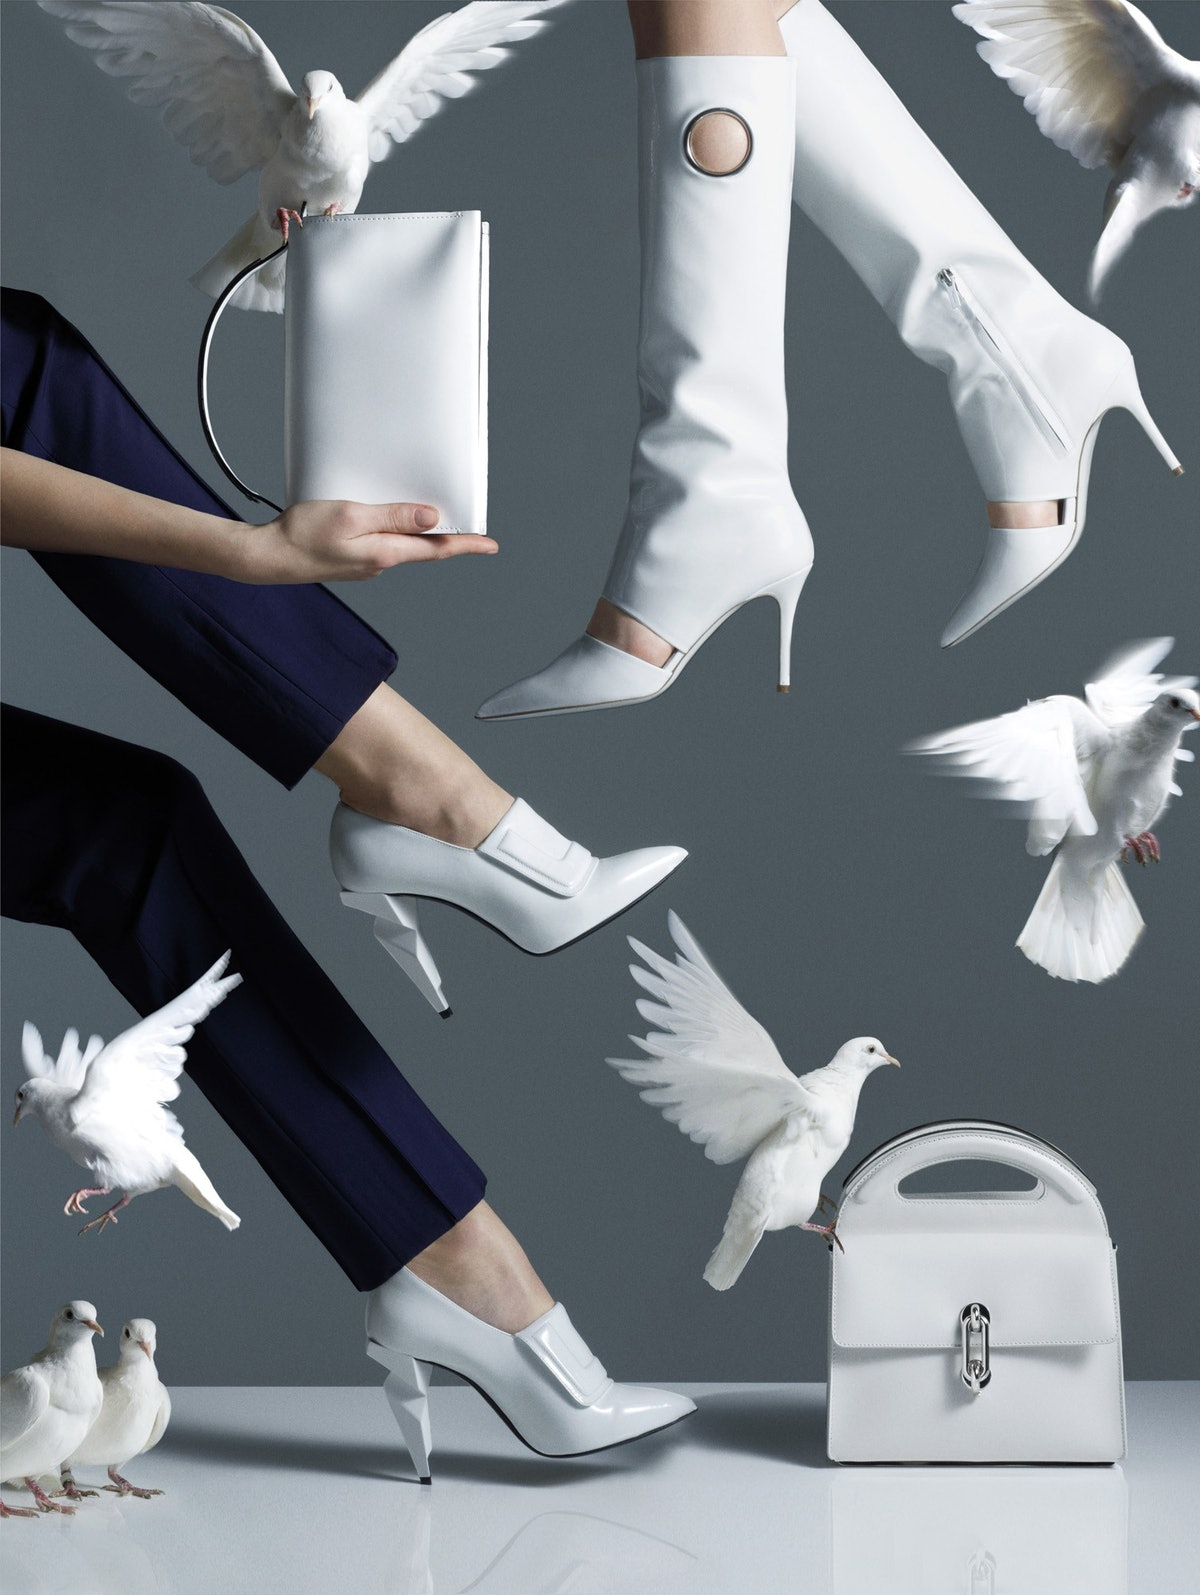 acar-white-purses-and-shoes-h